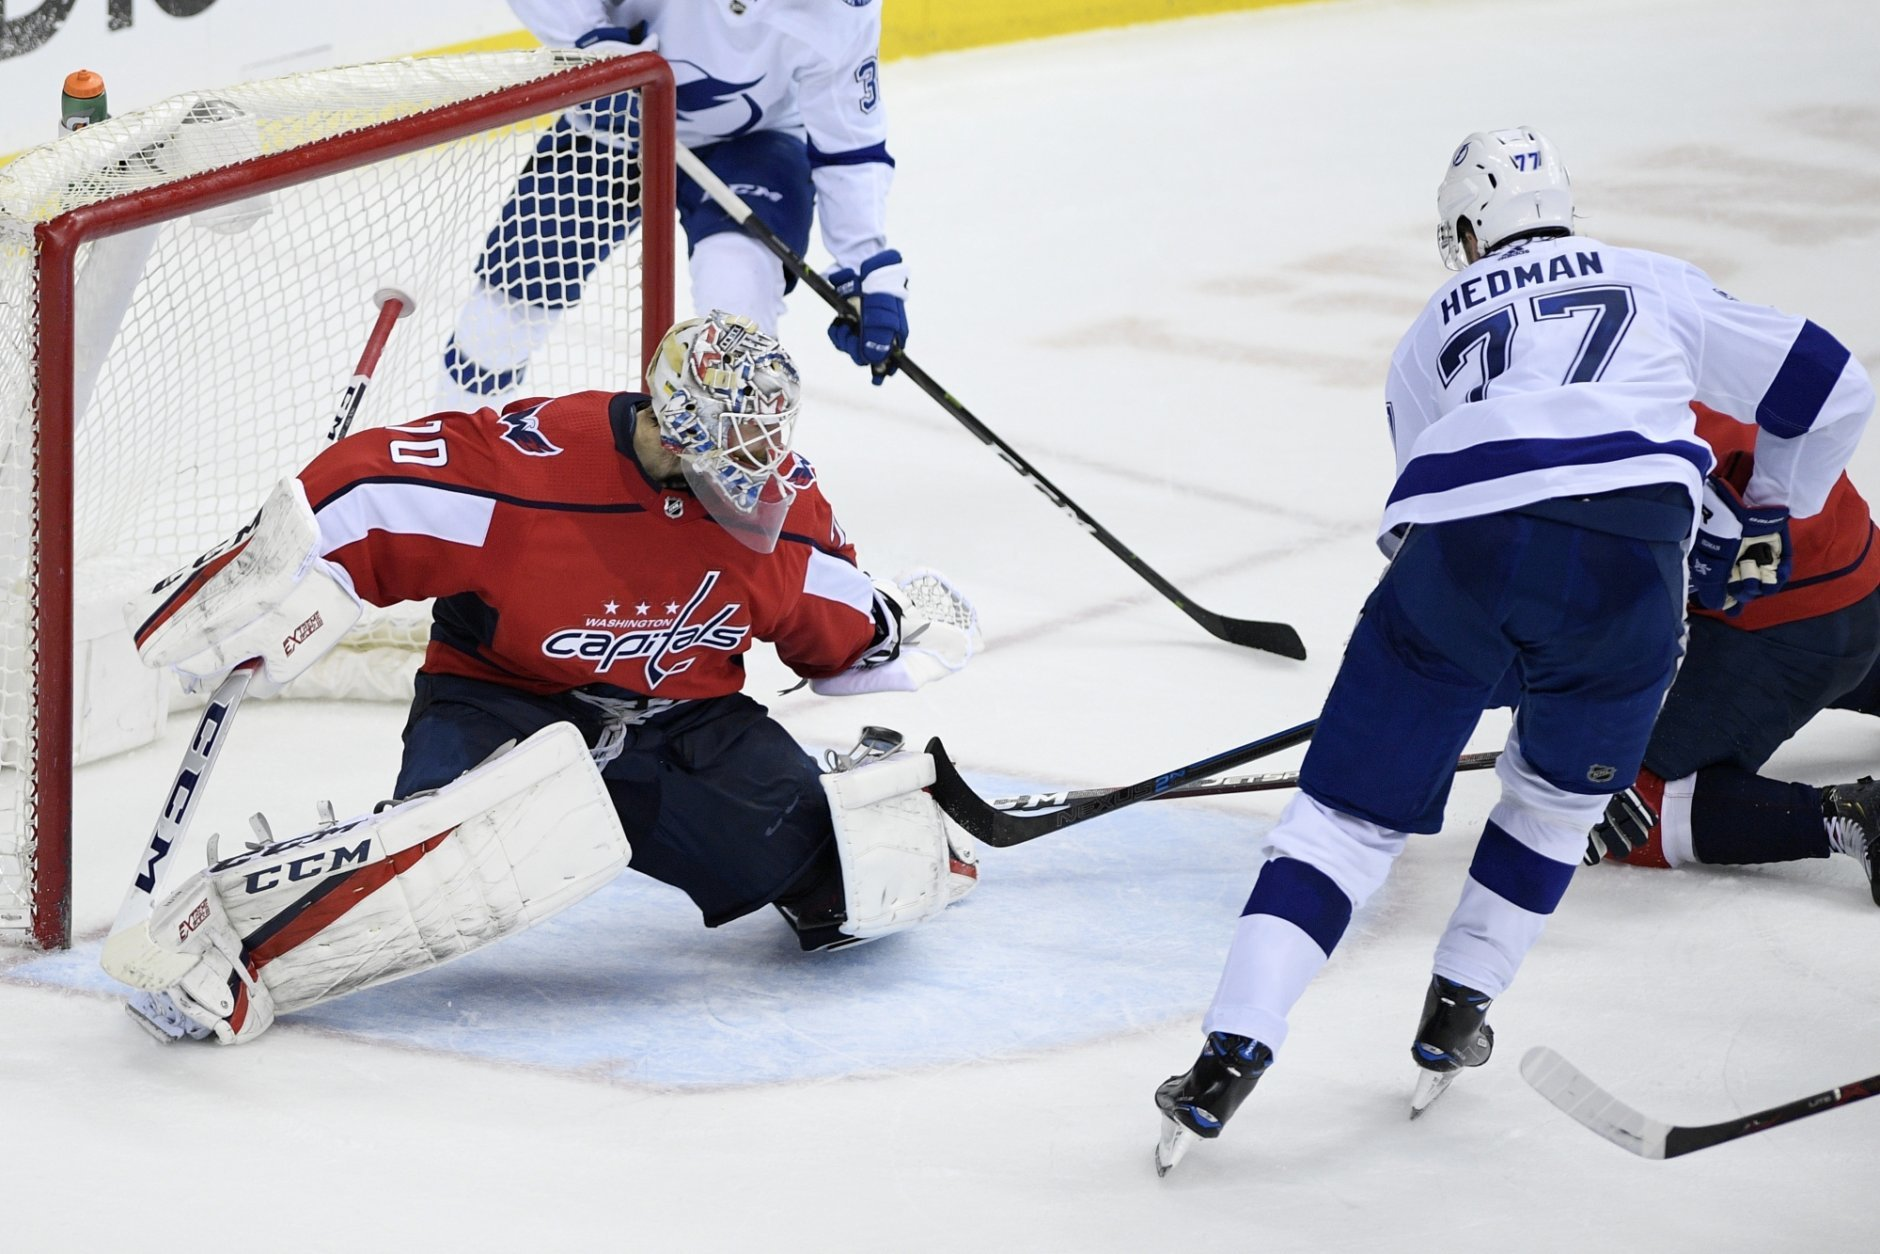 Tampa Bay Lightning defenseman Victor Hedman (77), of Sweden, scores in overtime against against Washington Capitals goaltender Braden Holtby (70) during an NHL hockey game Wednesday, March 20, 2019, in Washington. The Lightning won 5-4. (AP Photo/Nick Wass)